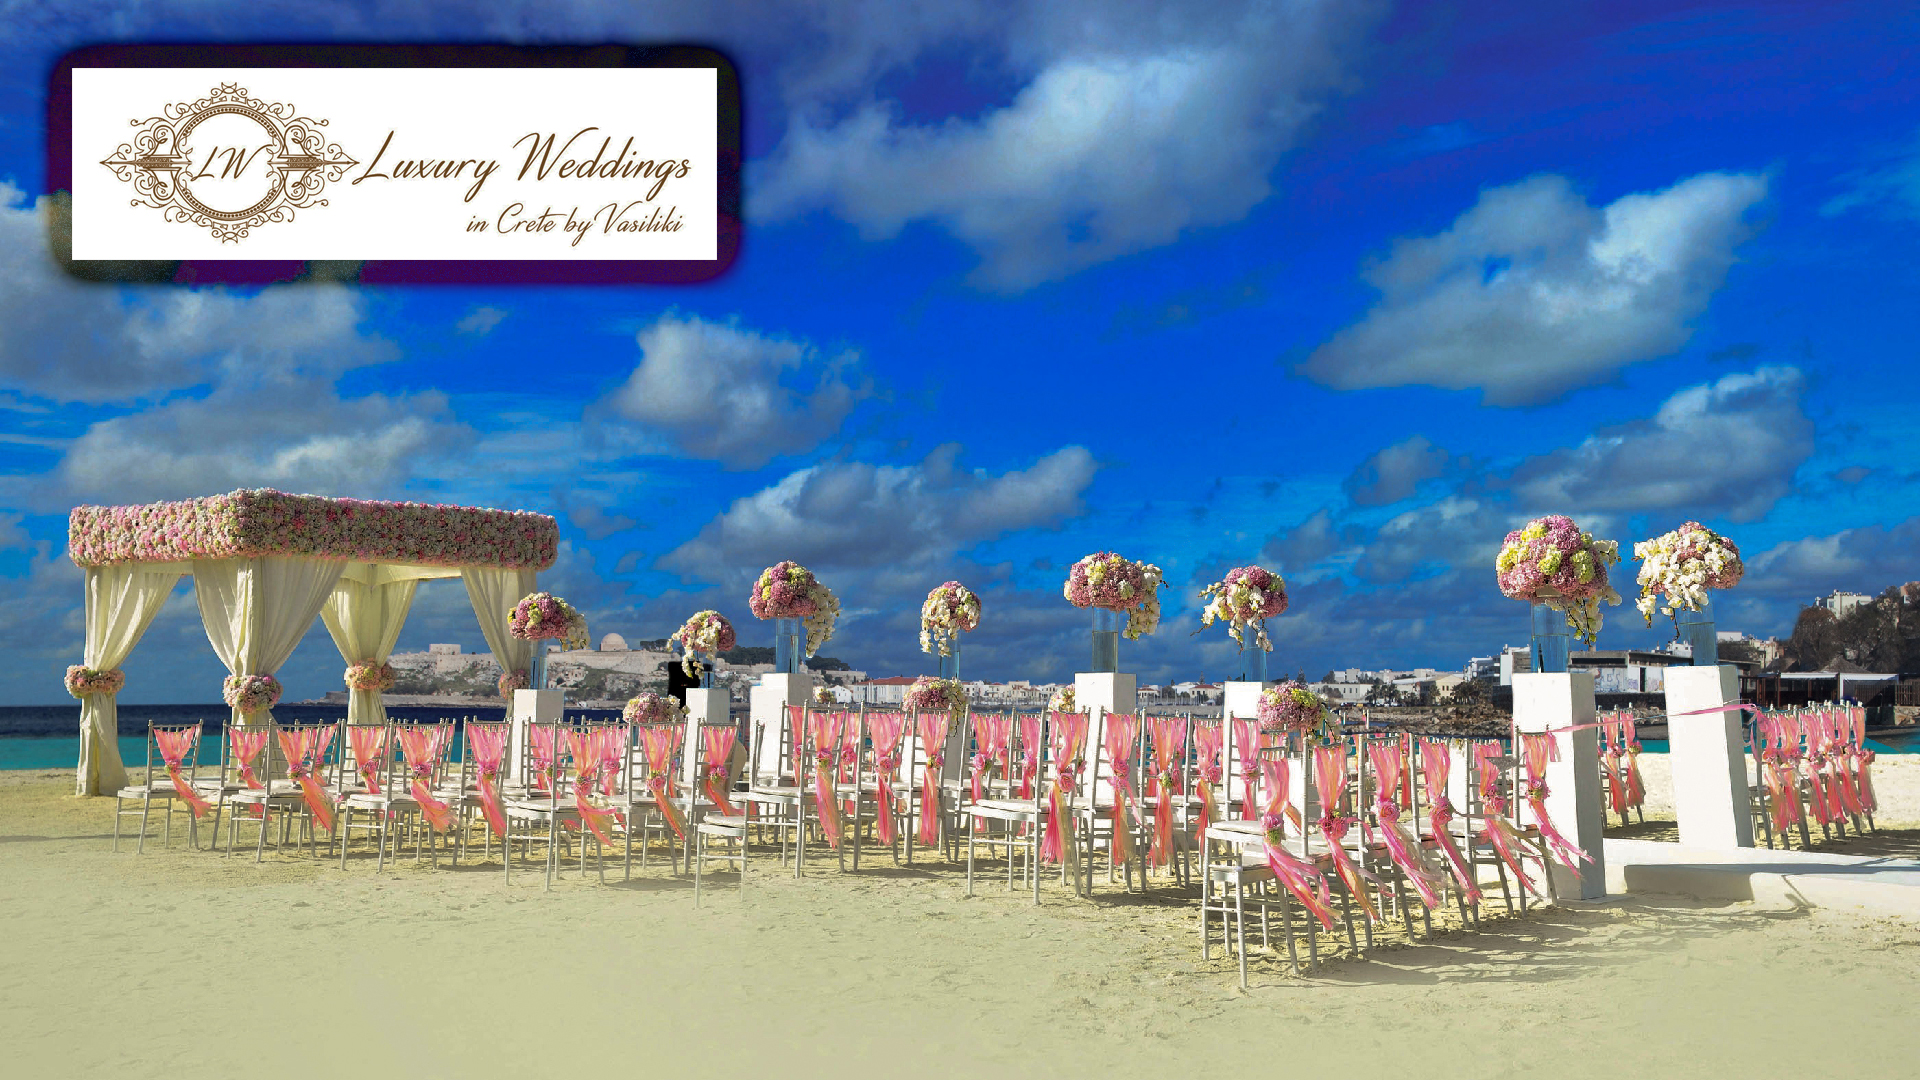 Luxury Weddings in Crete by Vasiliki - Γιωργος Αντωνακης, Wedding plan